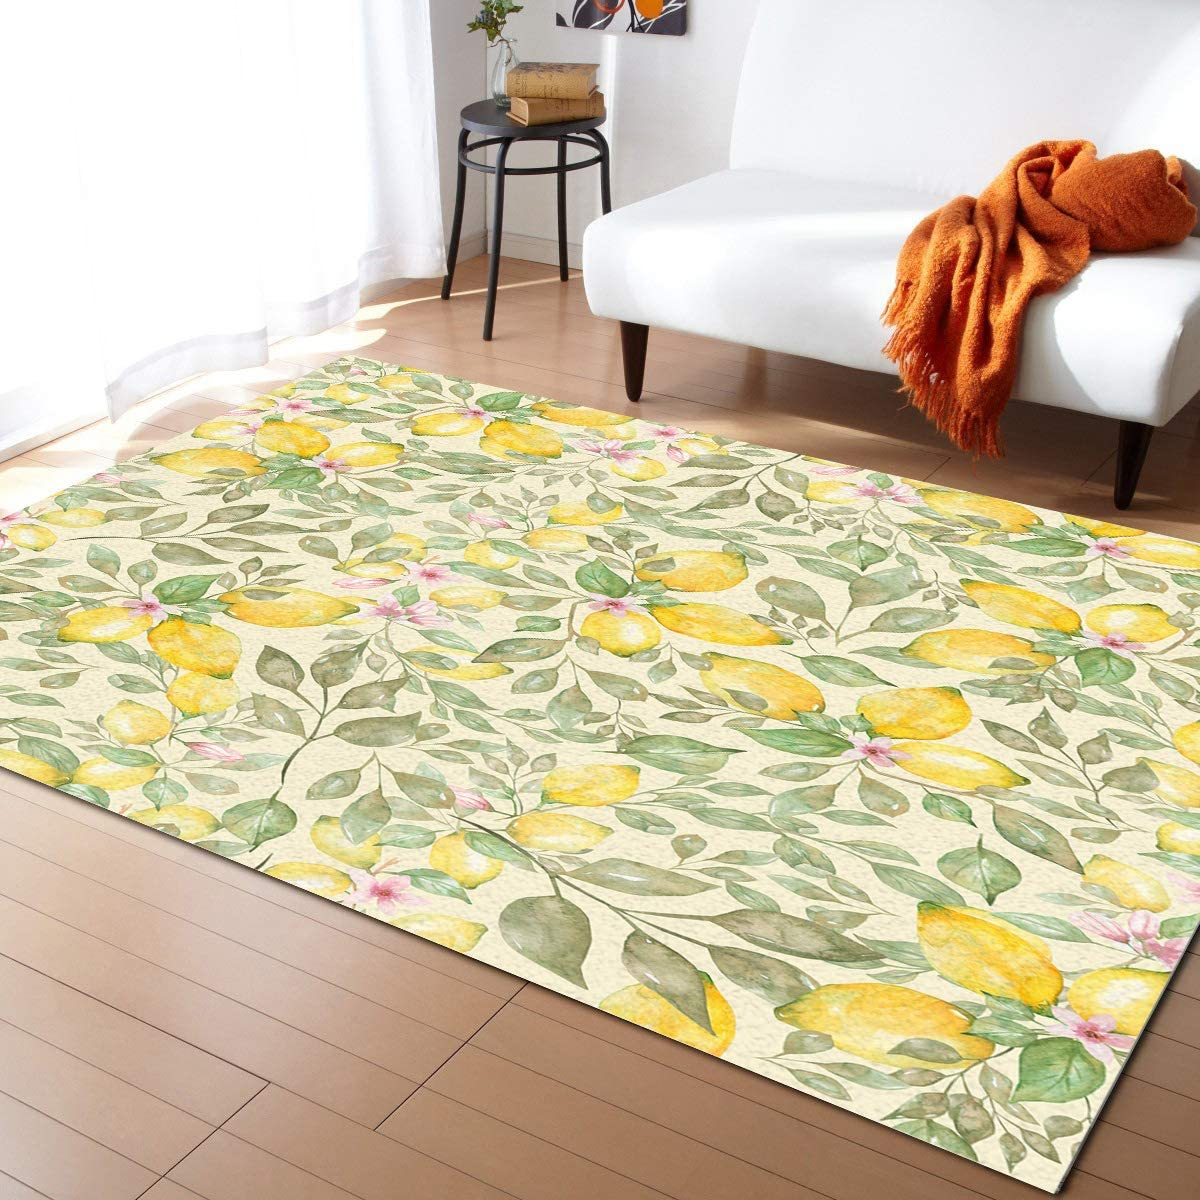 Some reservation Large Rectangle Area Rugs Shape Durable Pile Low x 3' Max 83% OFF 2' Waterc